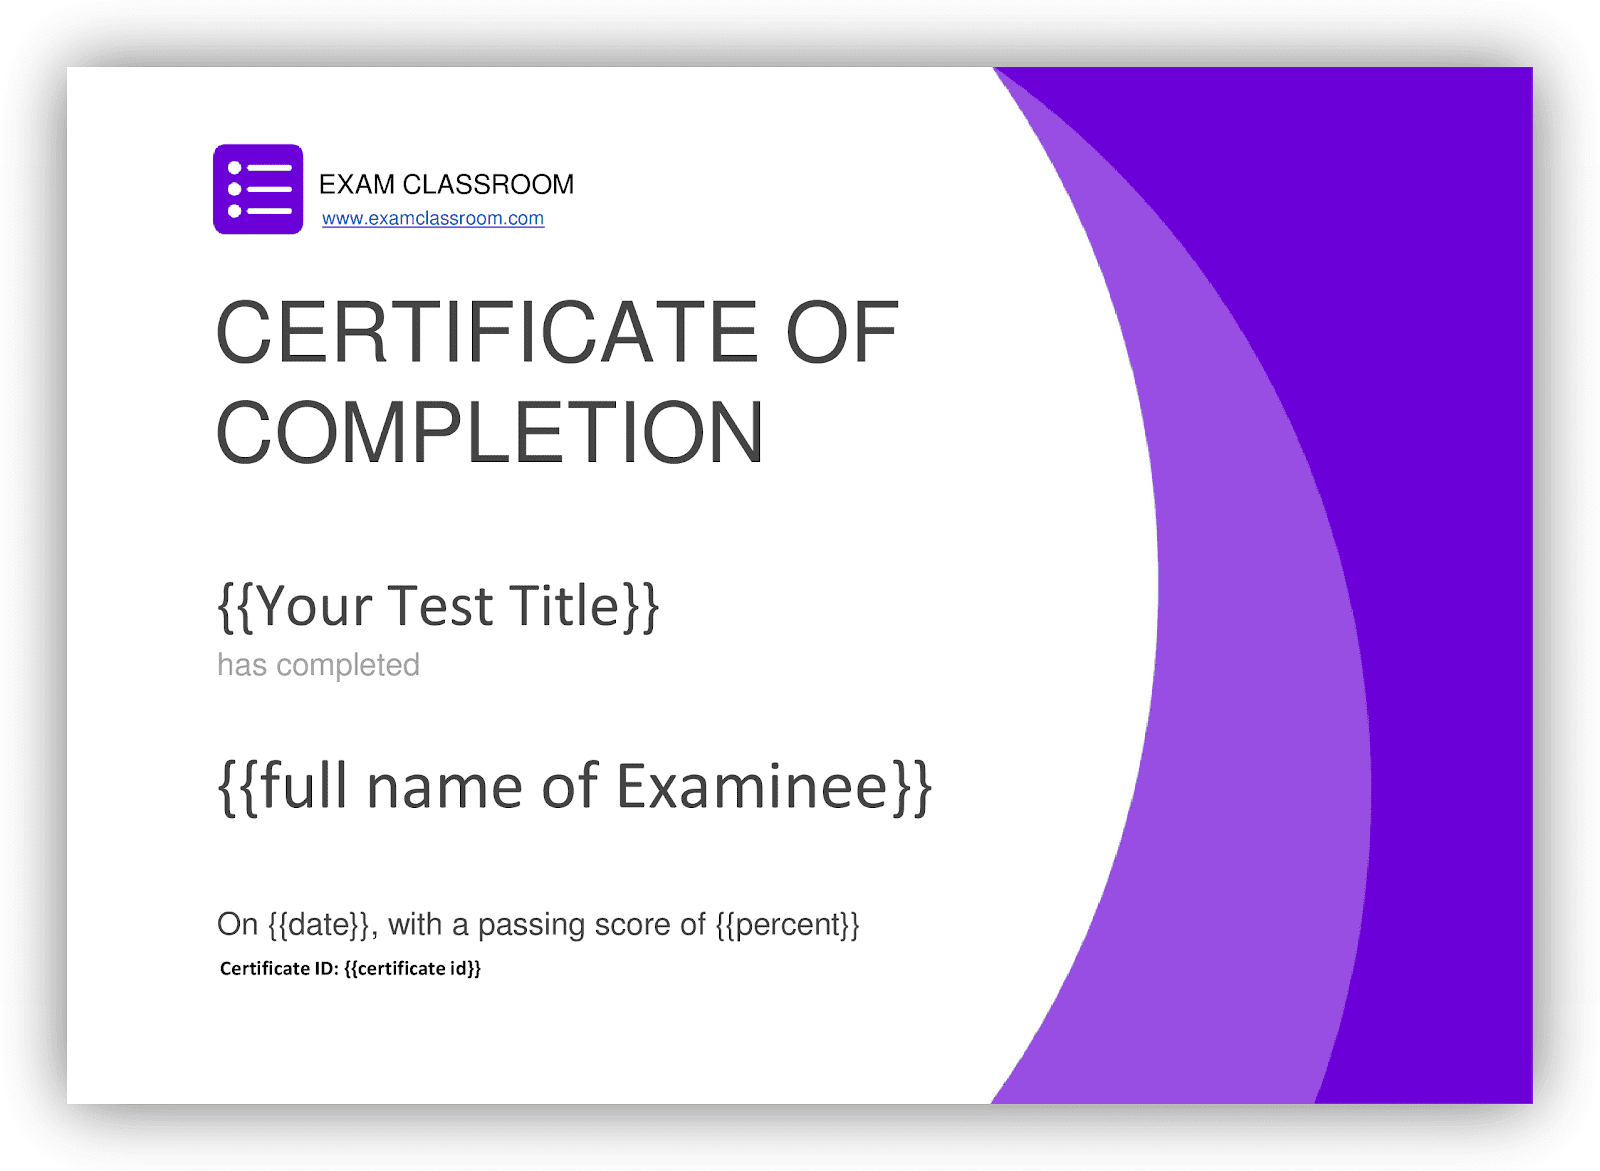 About Certification Test